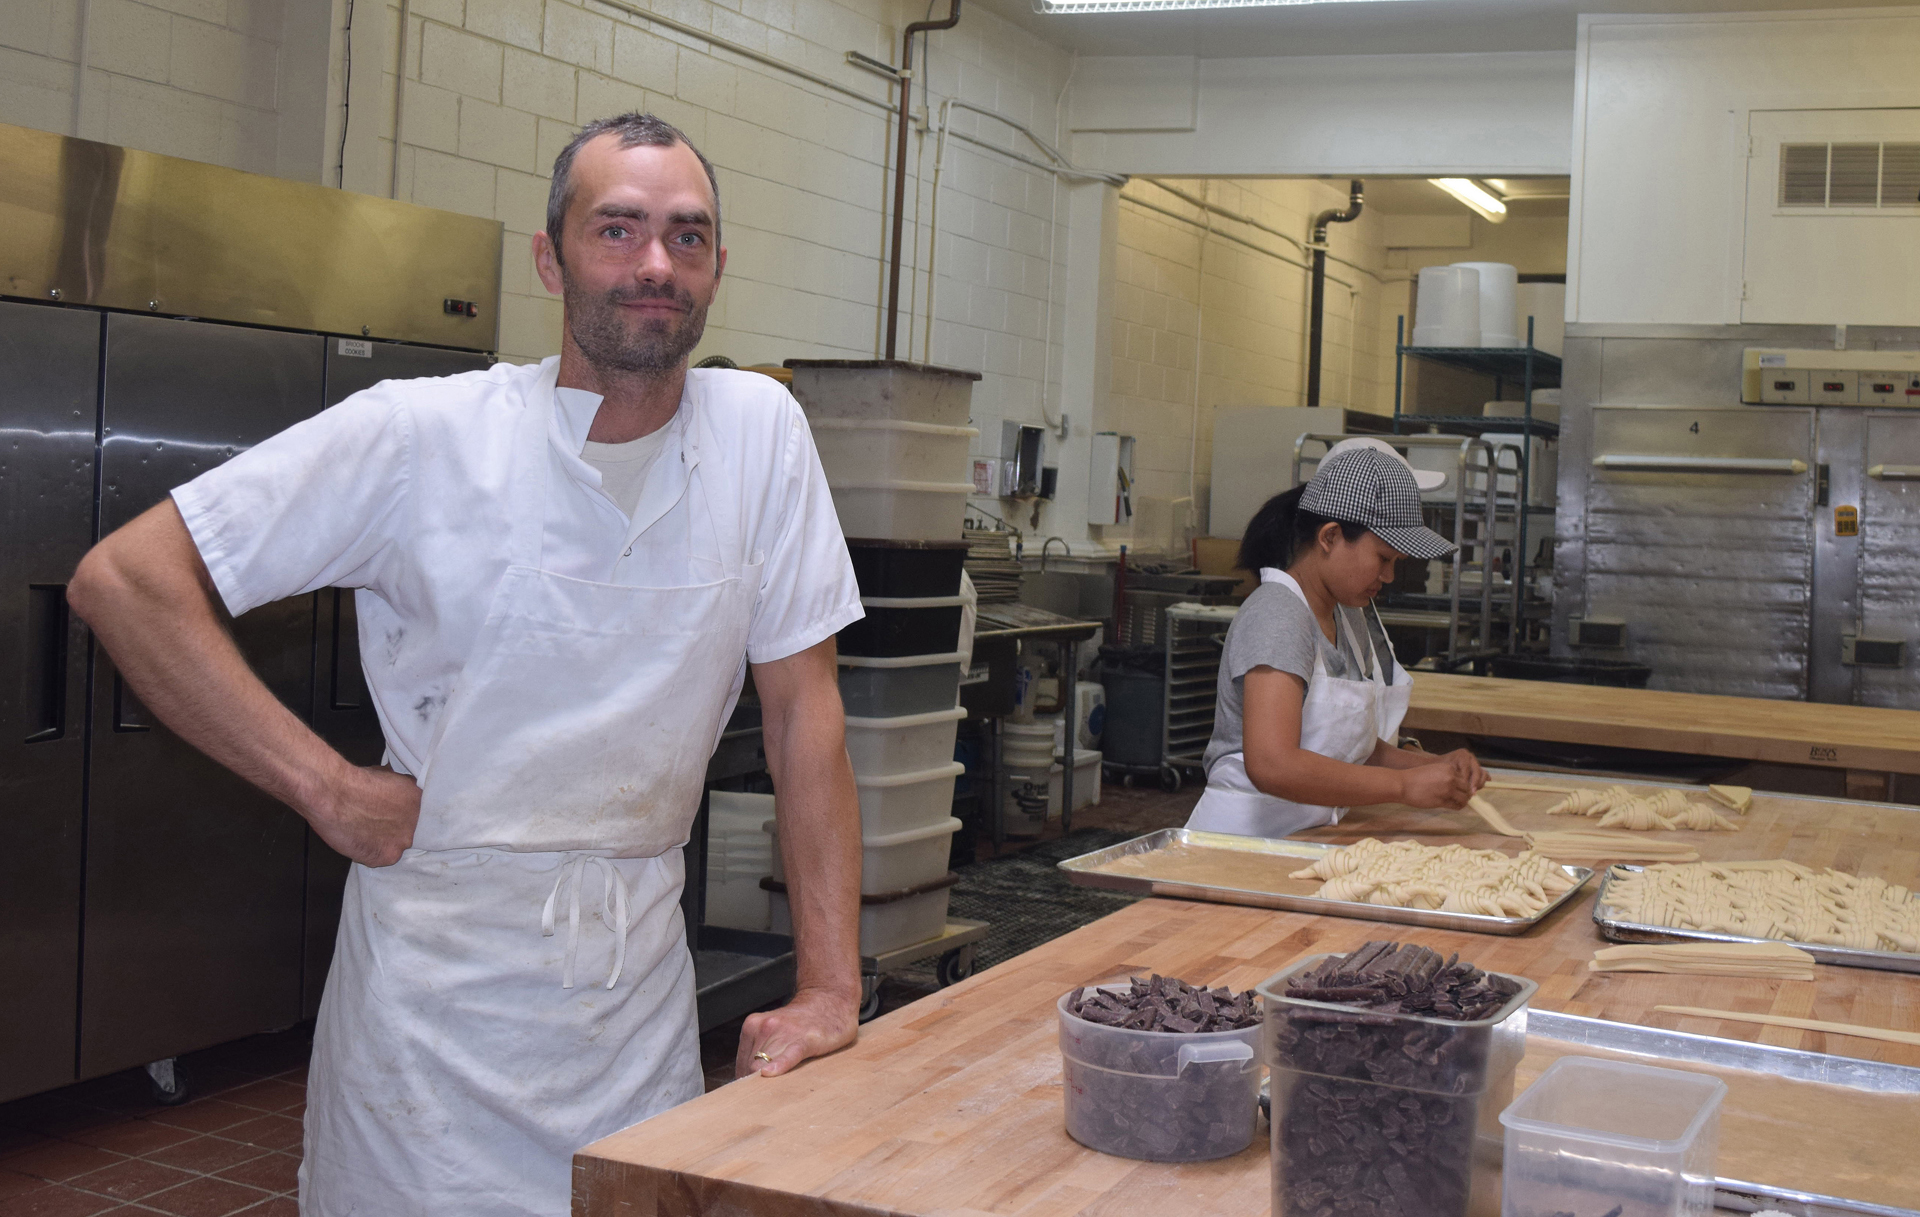 """Mac"" McConnell near the pastry production area in his Mountain View bakery, which is located in Acme's former South Bay digs."